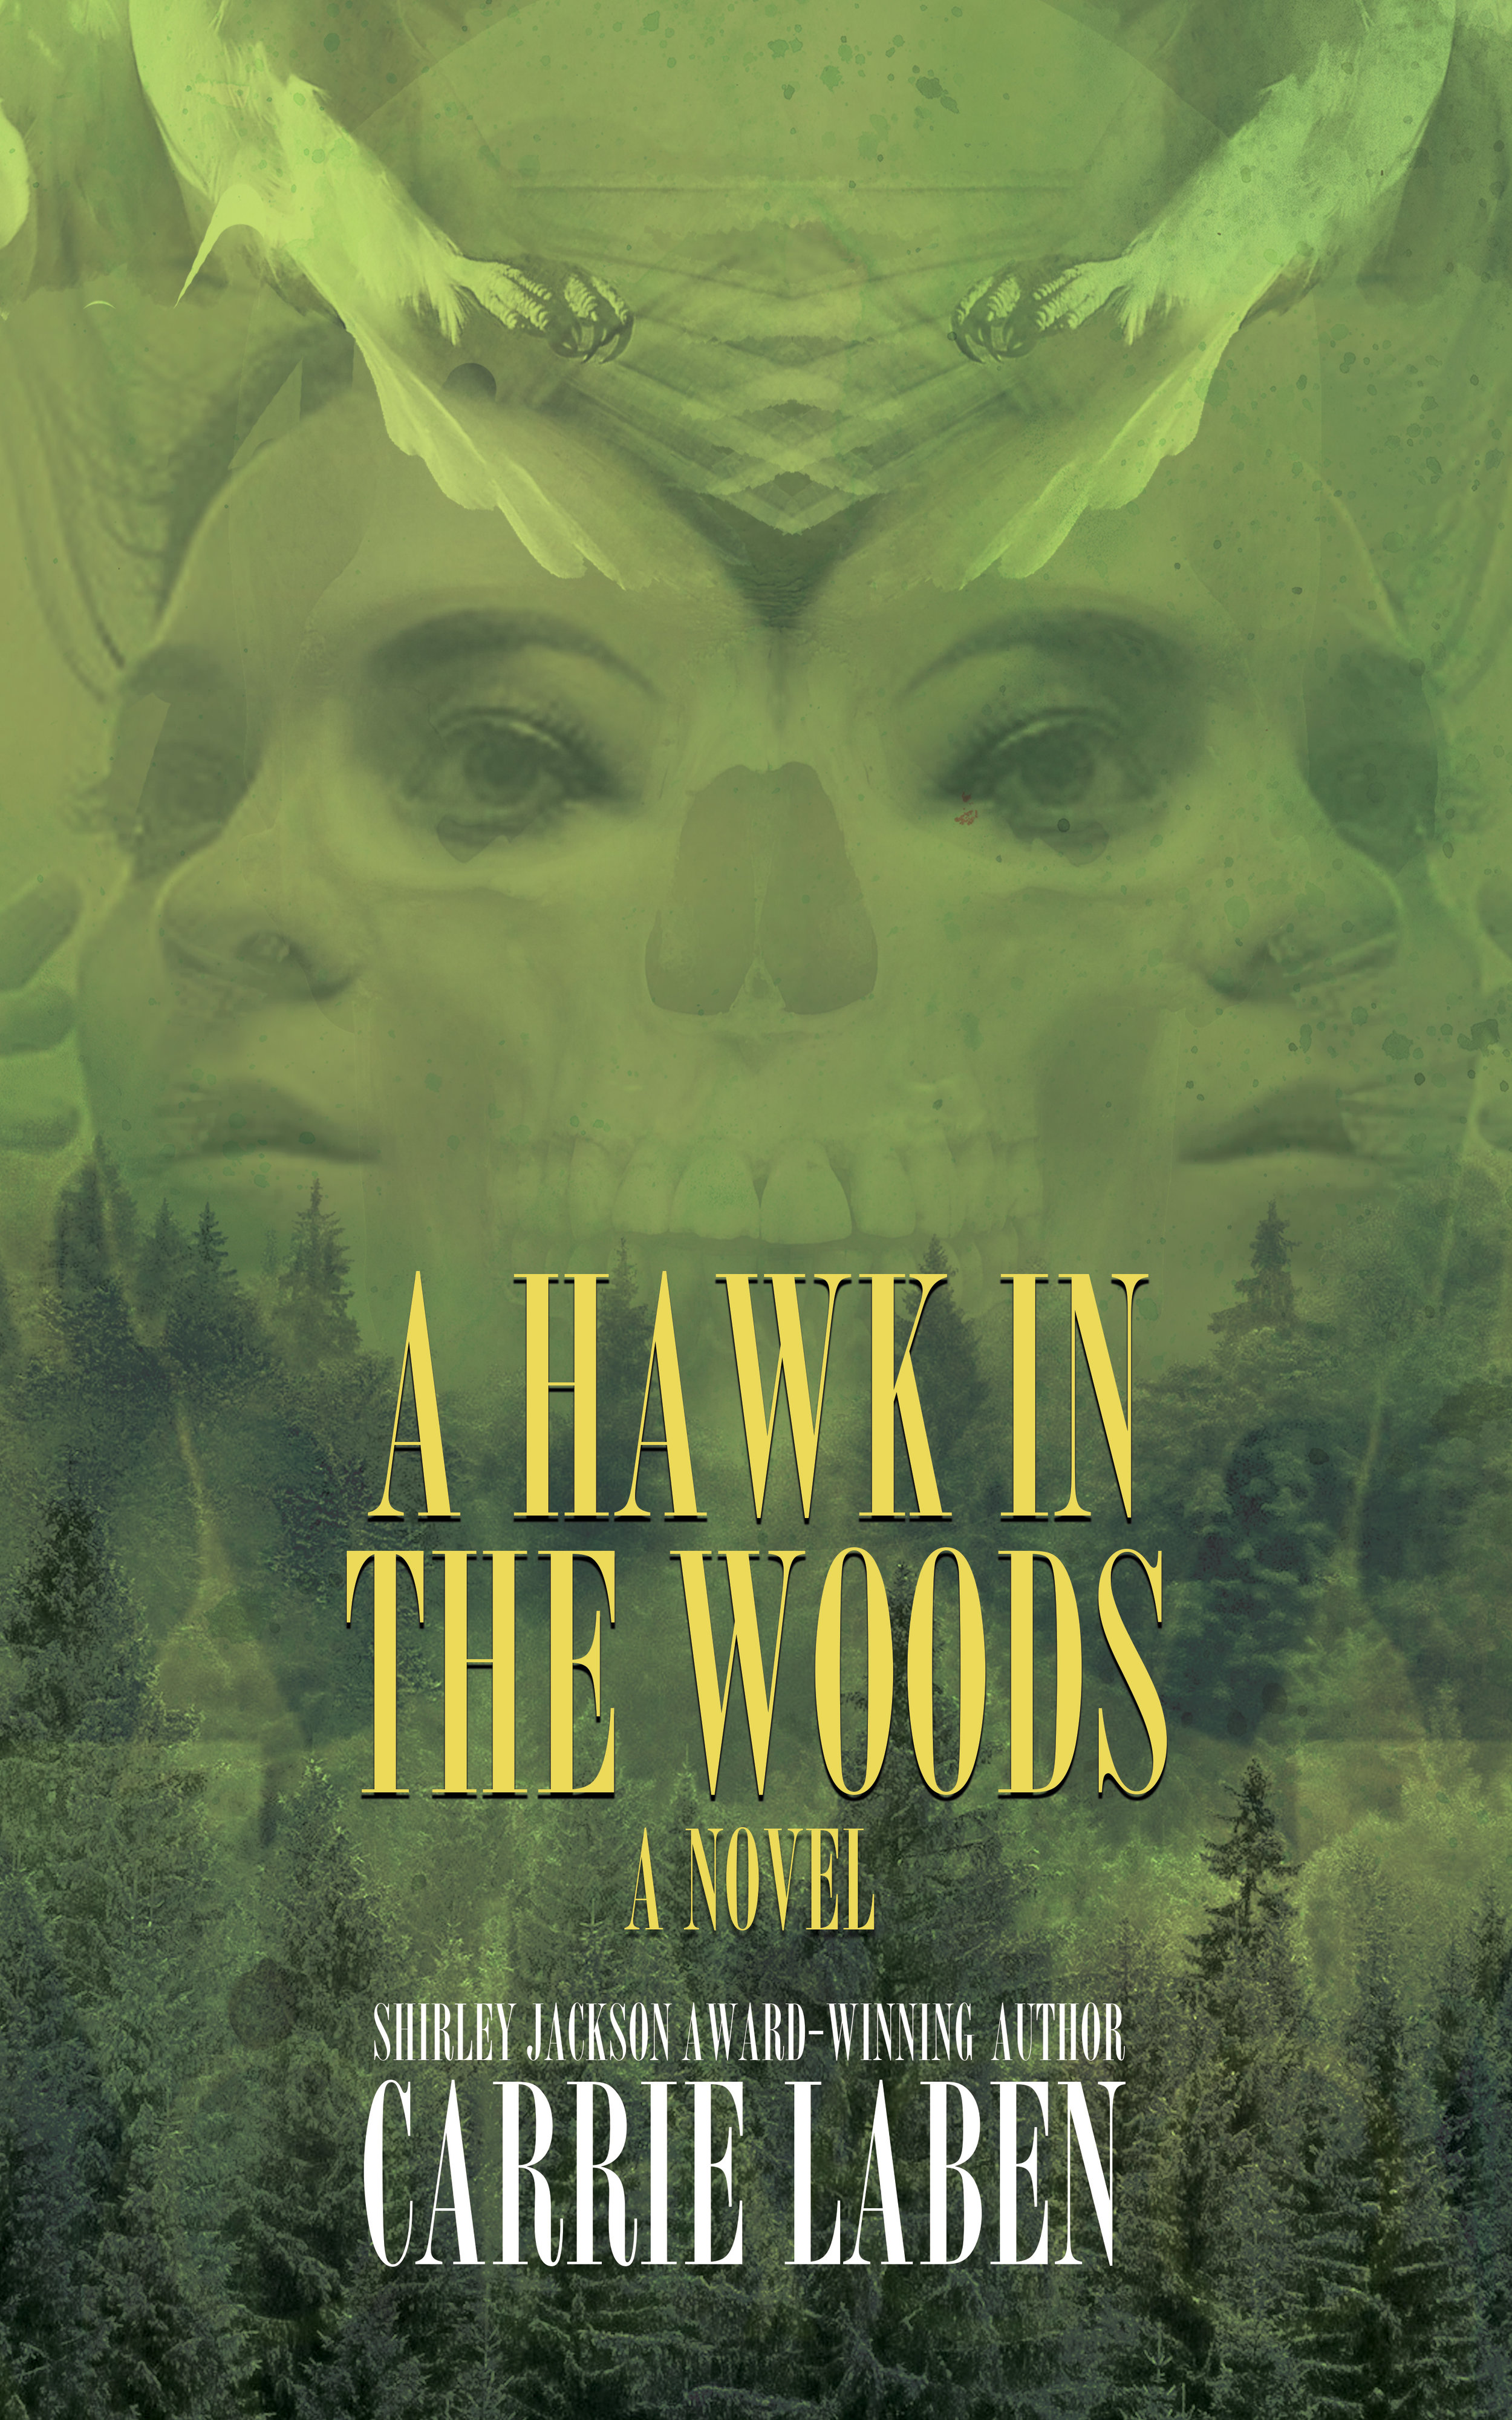 A Hawk in the Woods_Carrie Laben.jpg